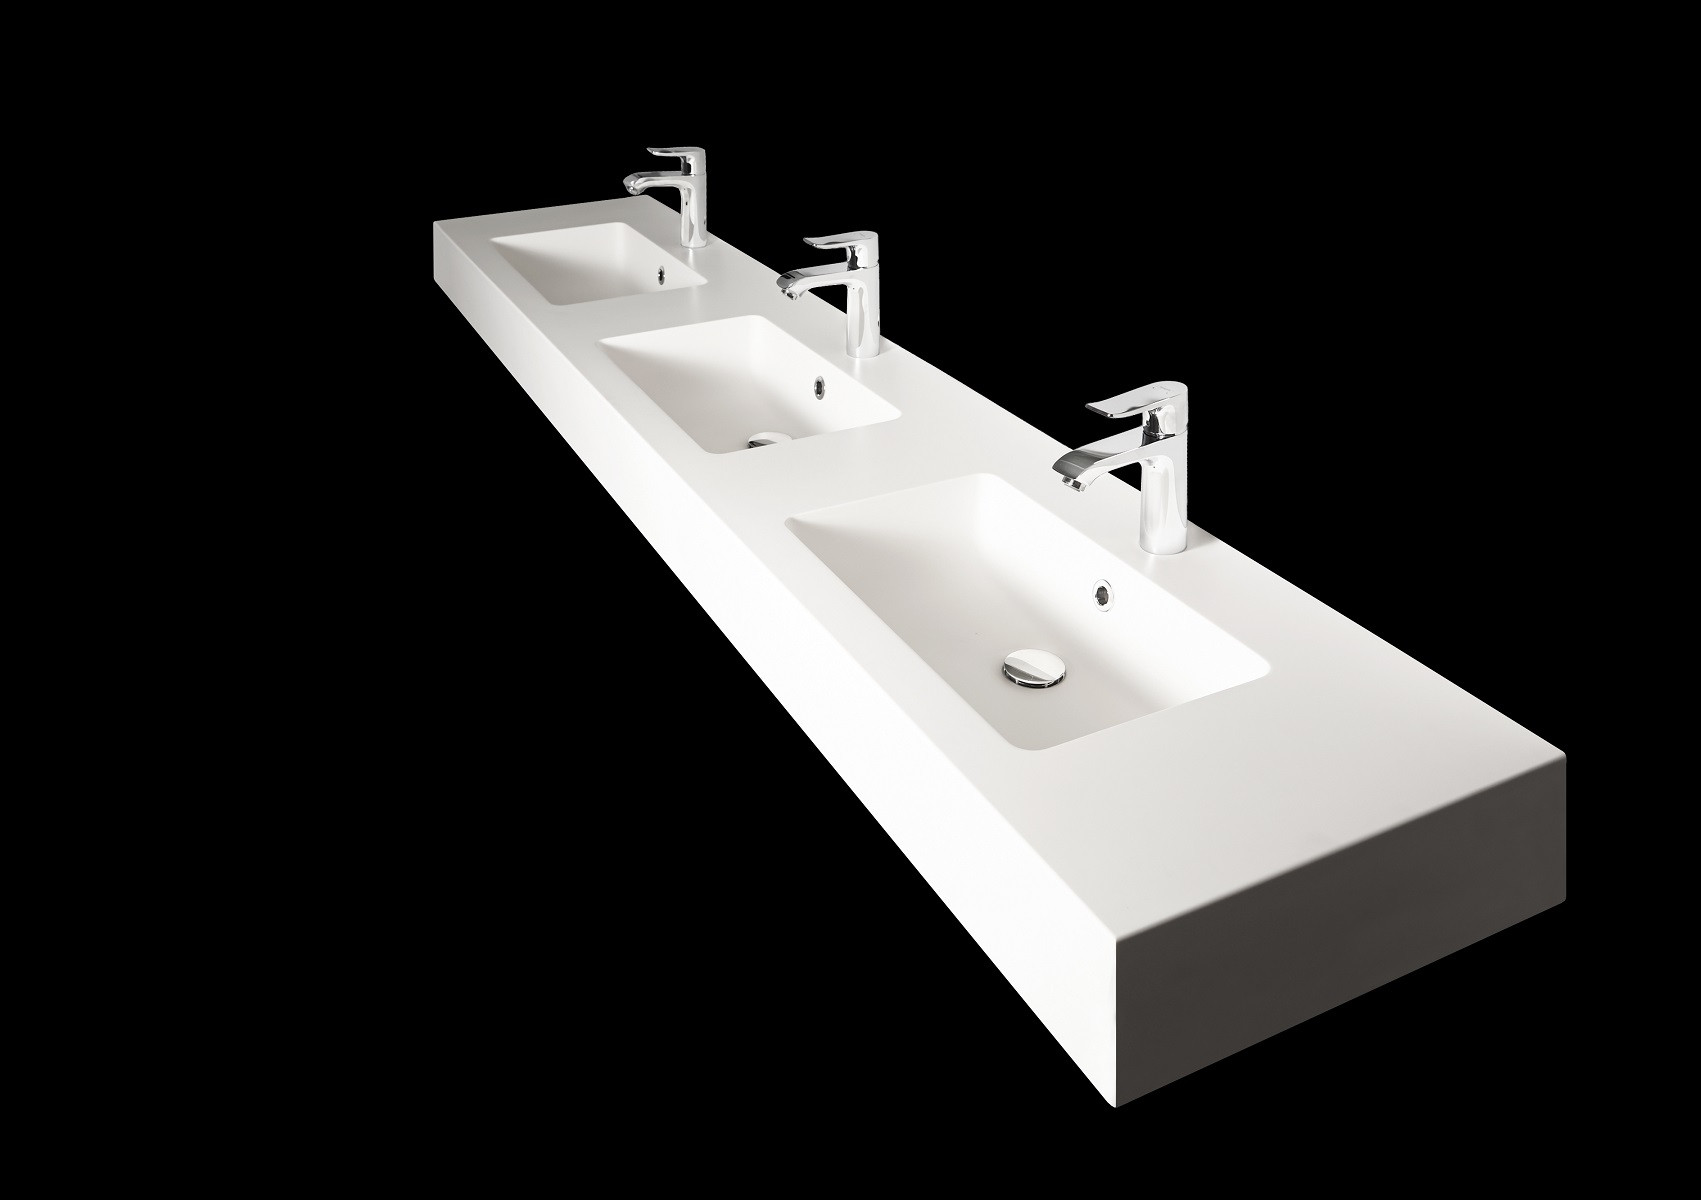 Aquatica Lantana-A-Wht Stone Wall Mounted Lavatory Sink In White With Overflow